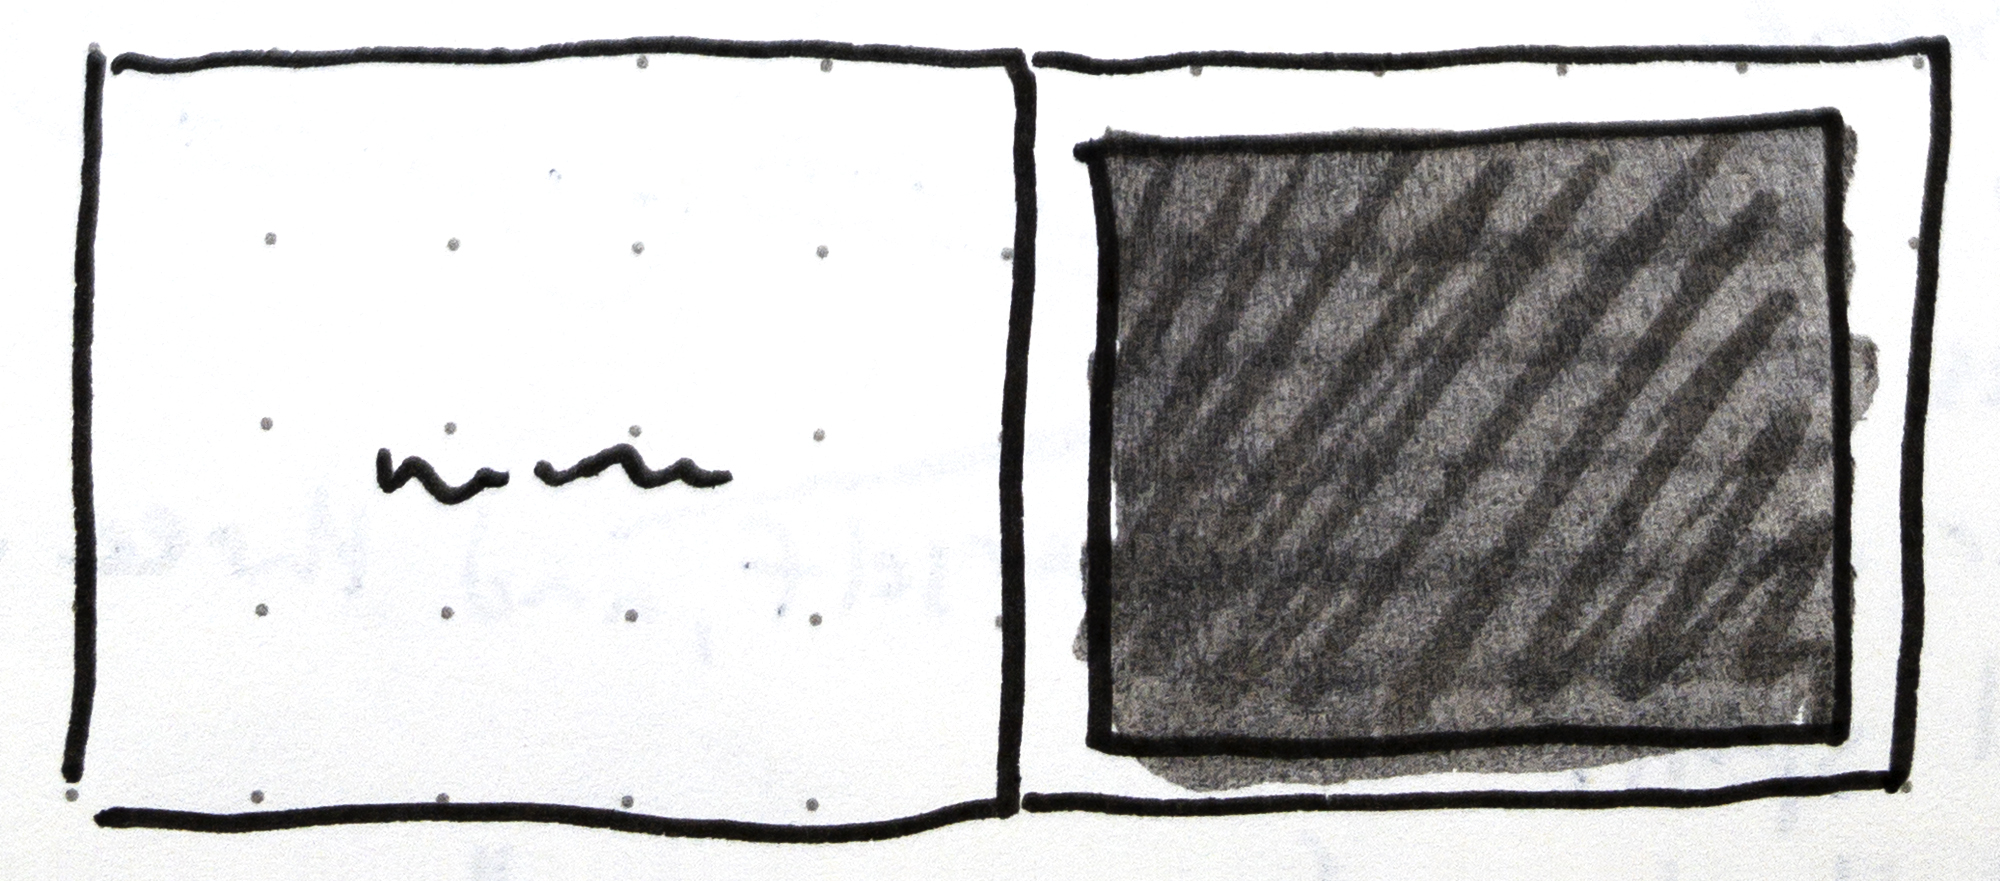 Fig. 4 - Sketch from my notes of a single page panel layout on the right page with words on the left page in David Wiesner's children's book,  Tuesday .